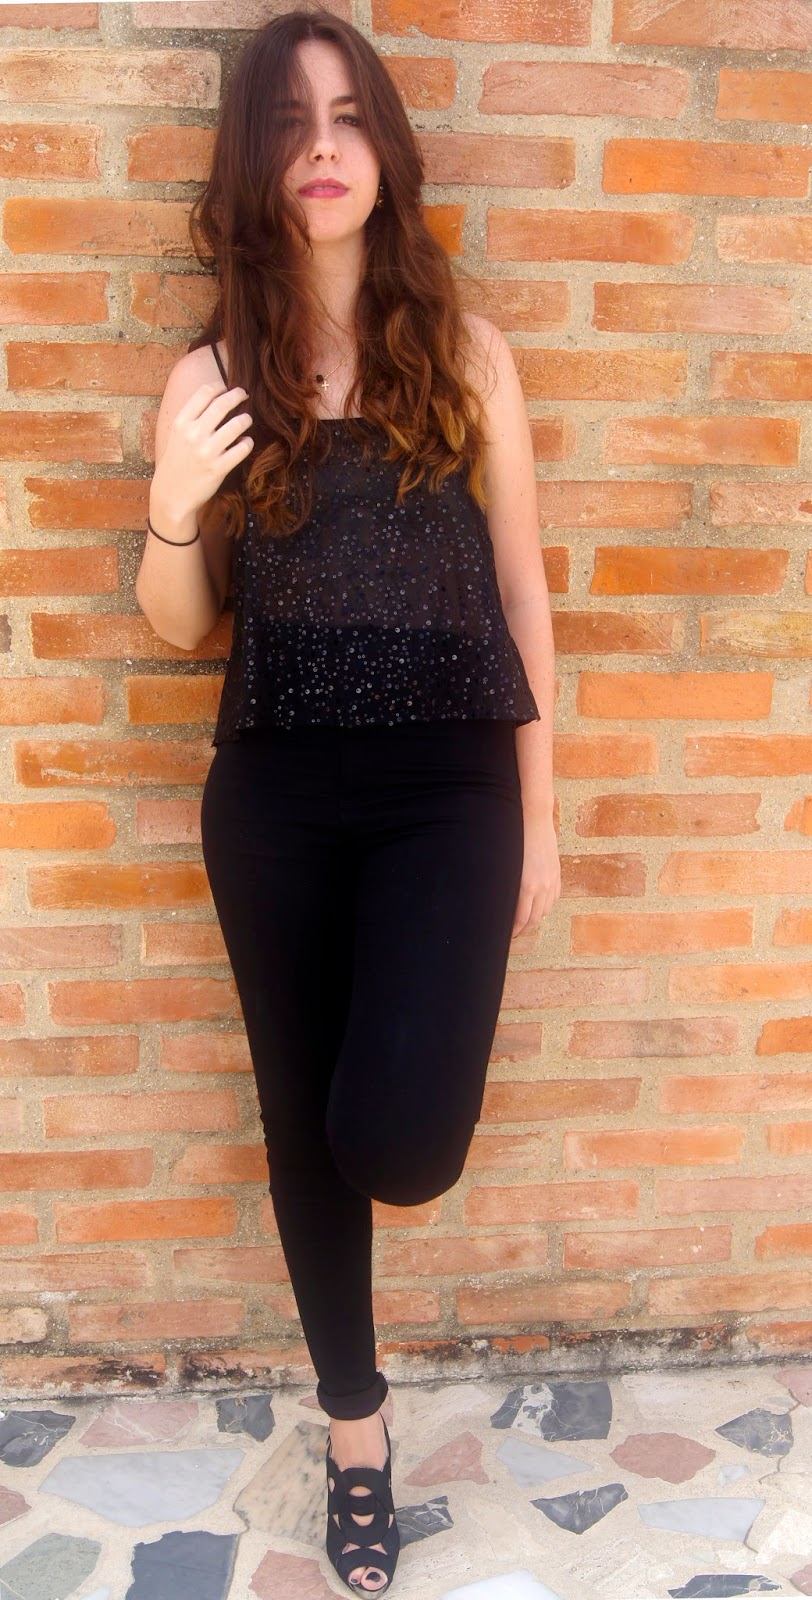 hey vicky hey, victoria suarez, blogger, fashion, total look, black, all black, negro